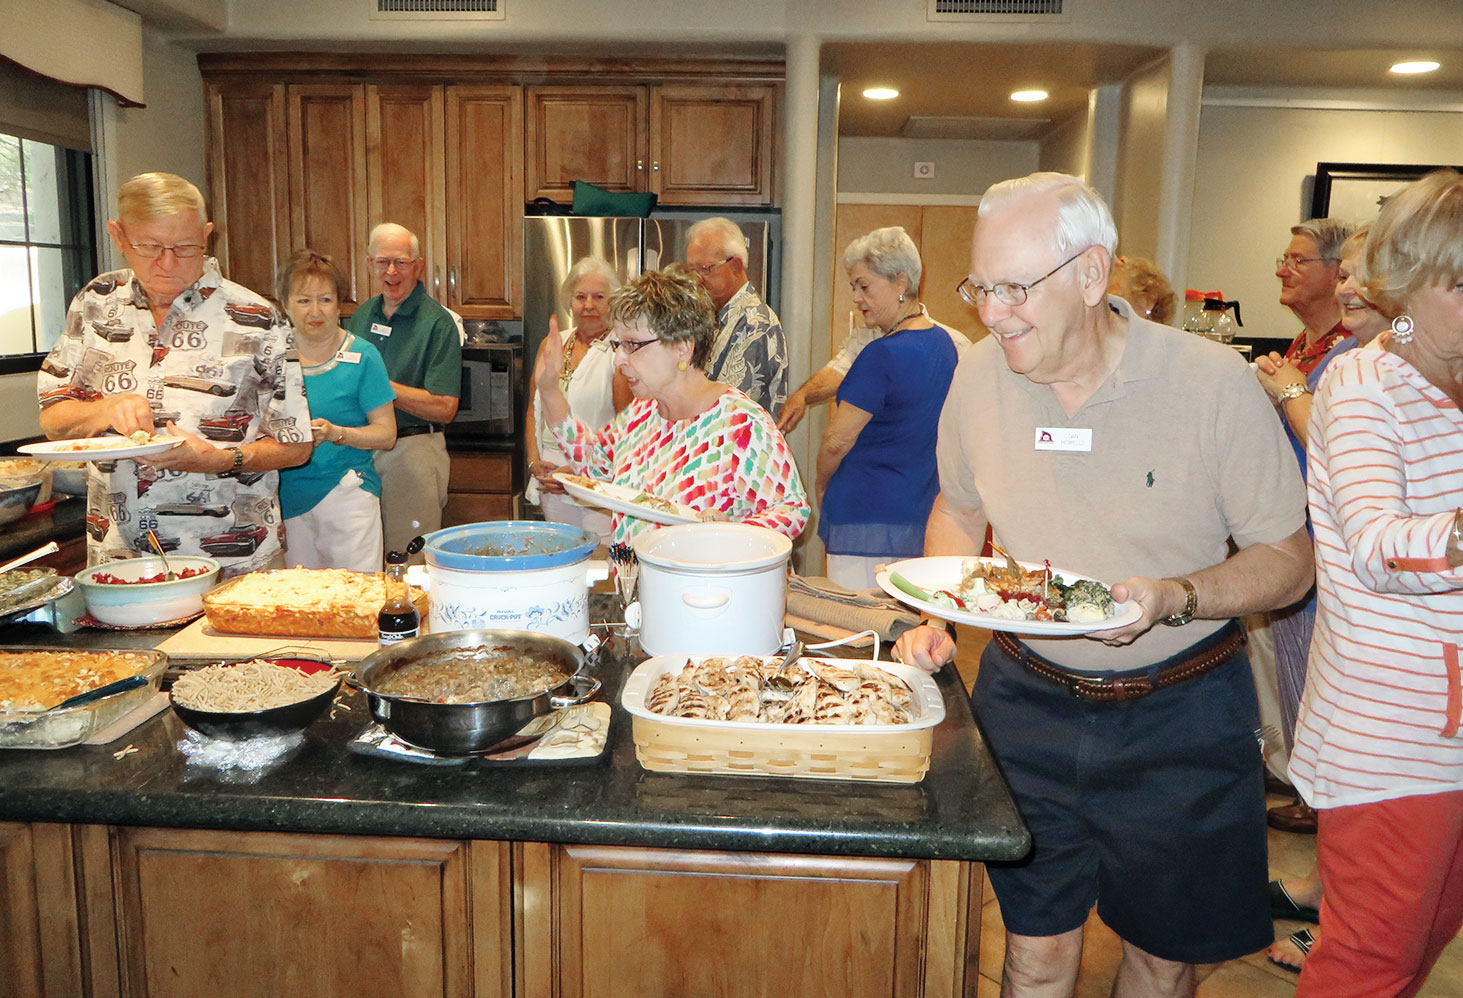 A potluck dinner is enjoyed by many.